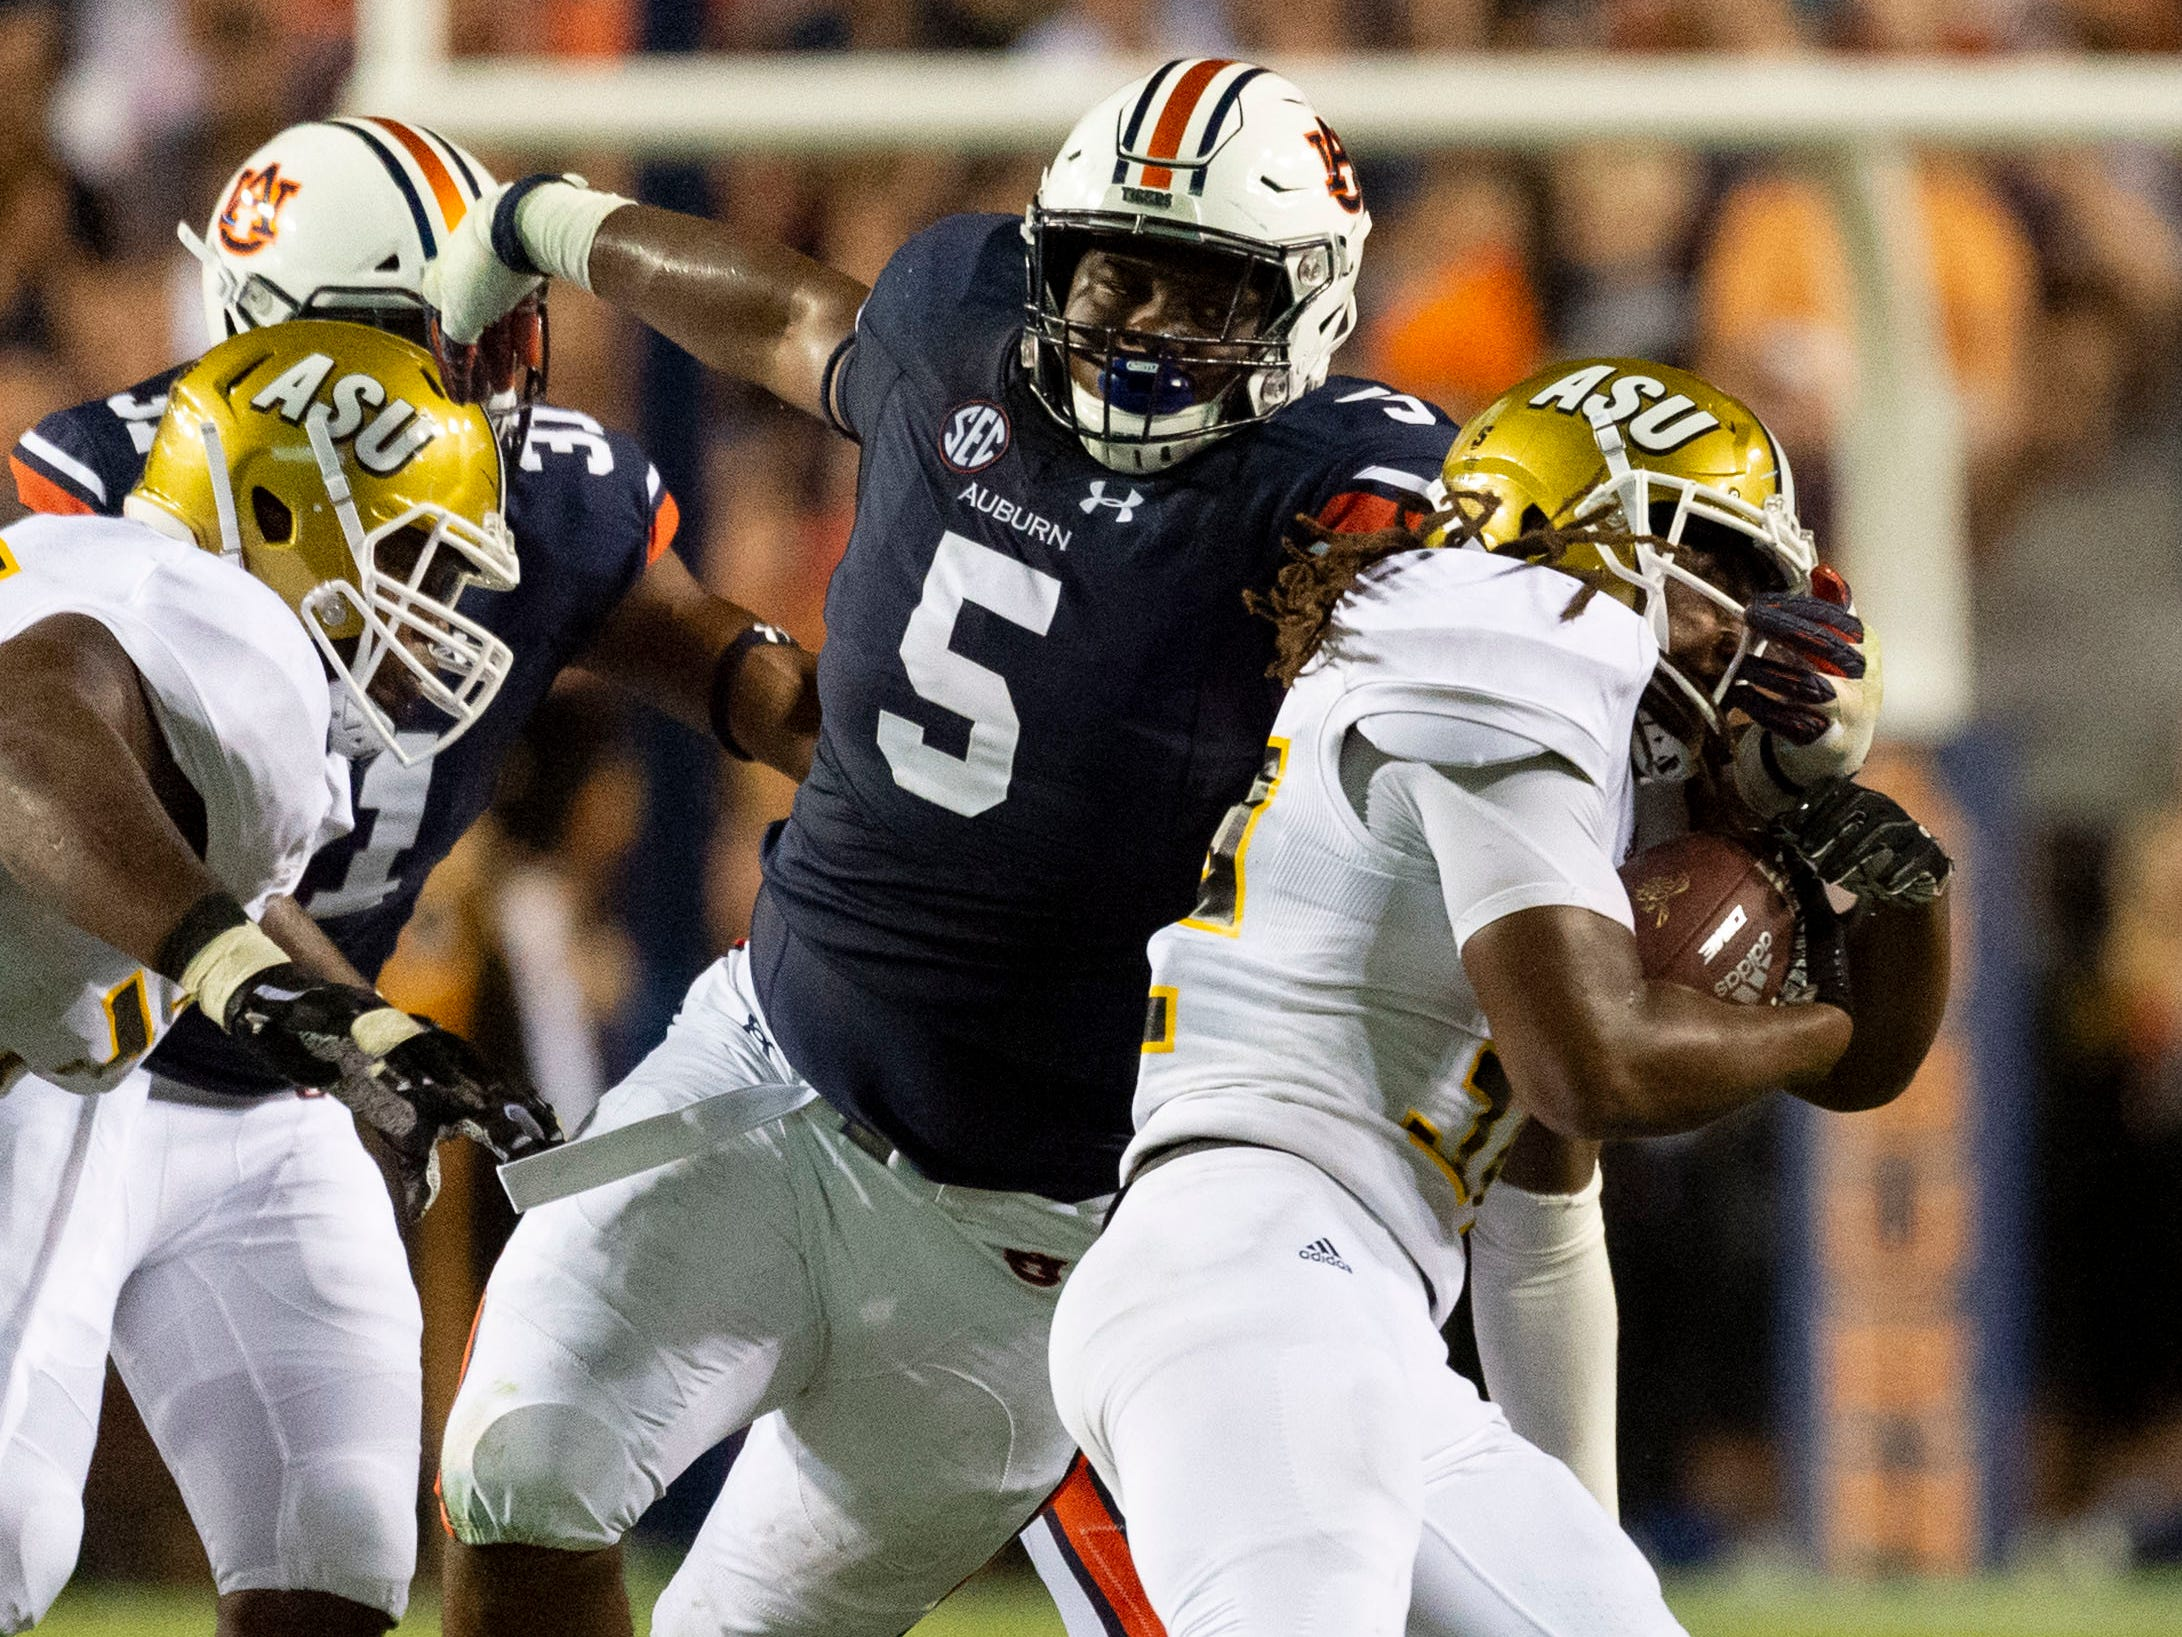 42. Derrick Brown, DT, Auburn: The 10th defensive tackle on this list, Brown is not spectacular at any one thing, but he's an all-around solid player who possesses the size and strength to hold up against the run and enough juice to occasionally disrupt the pocket on the pass-rush.